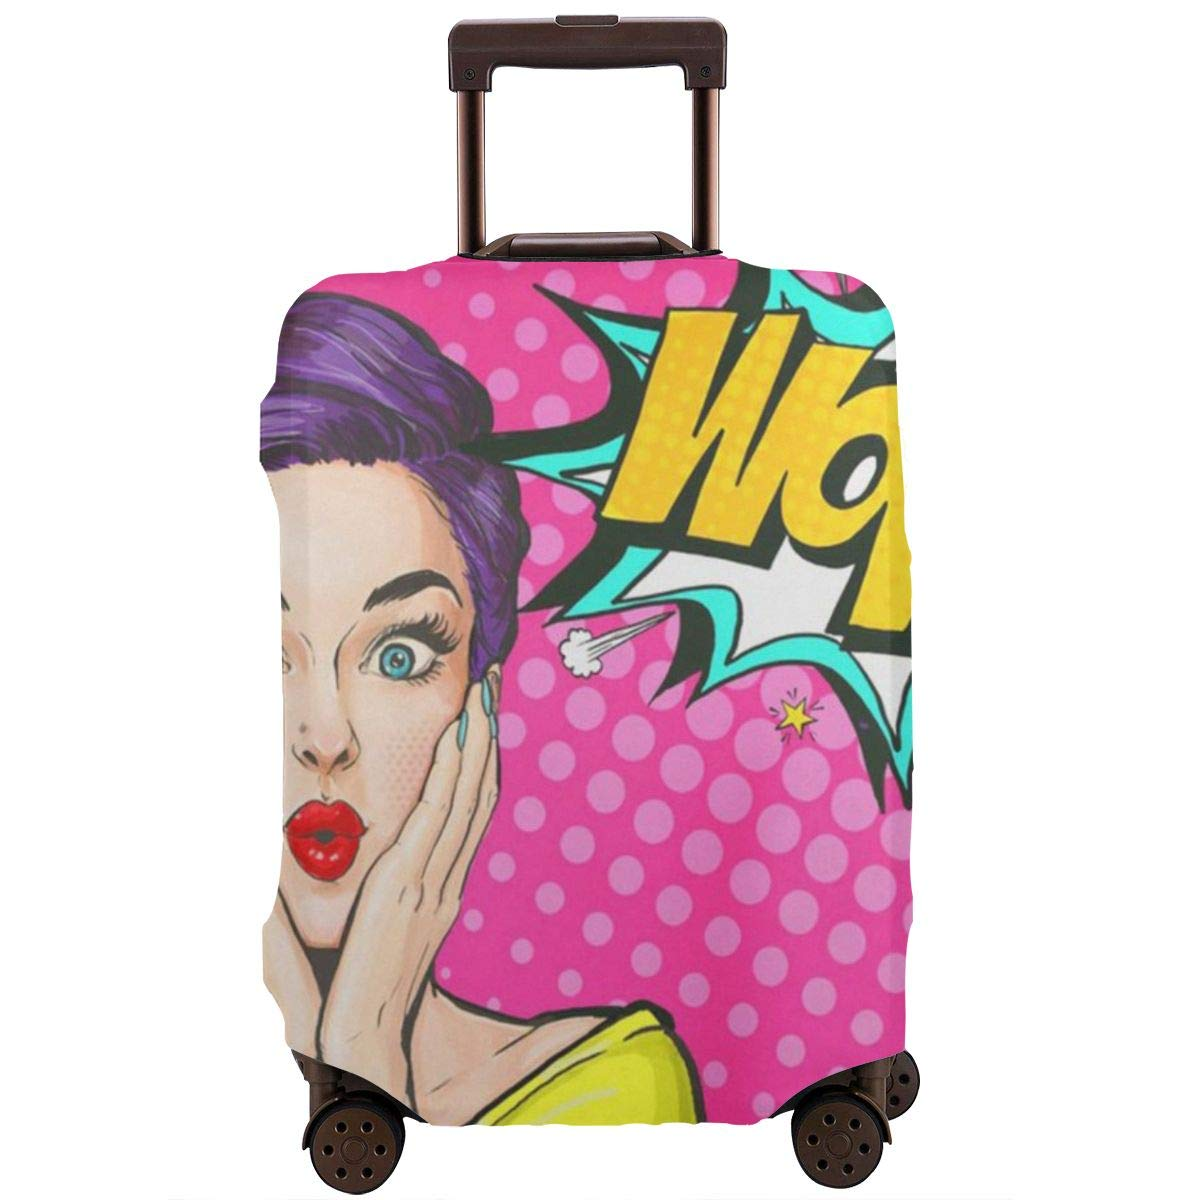 JHNDKJS Girl Comic Woman Wow Party Birthday Romantic Travel Luggage Cover Baggage Suitcase Protector Fit for 12-18 Inch Luggage